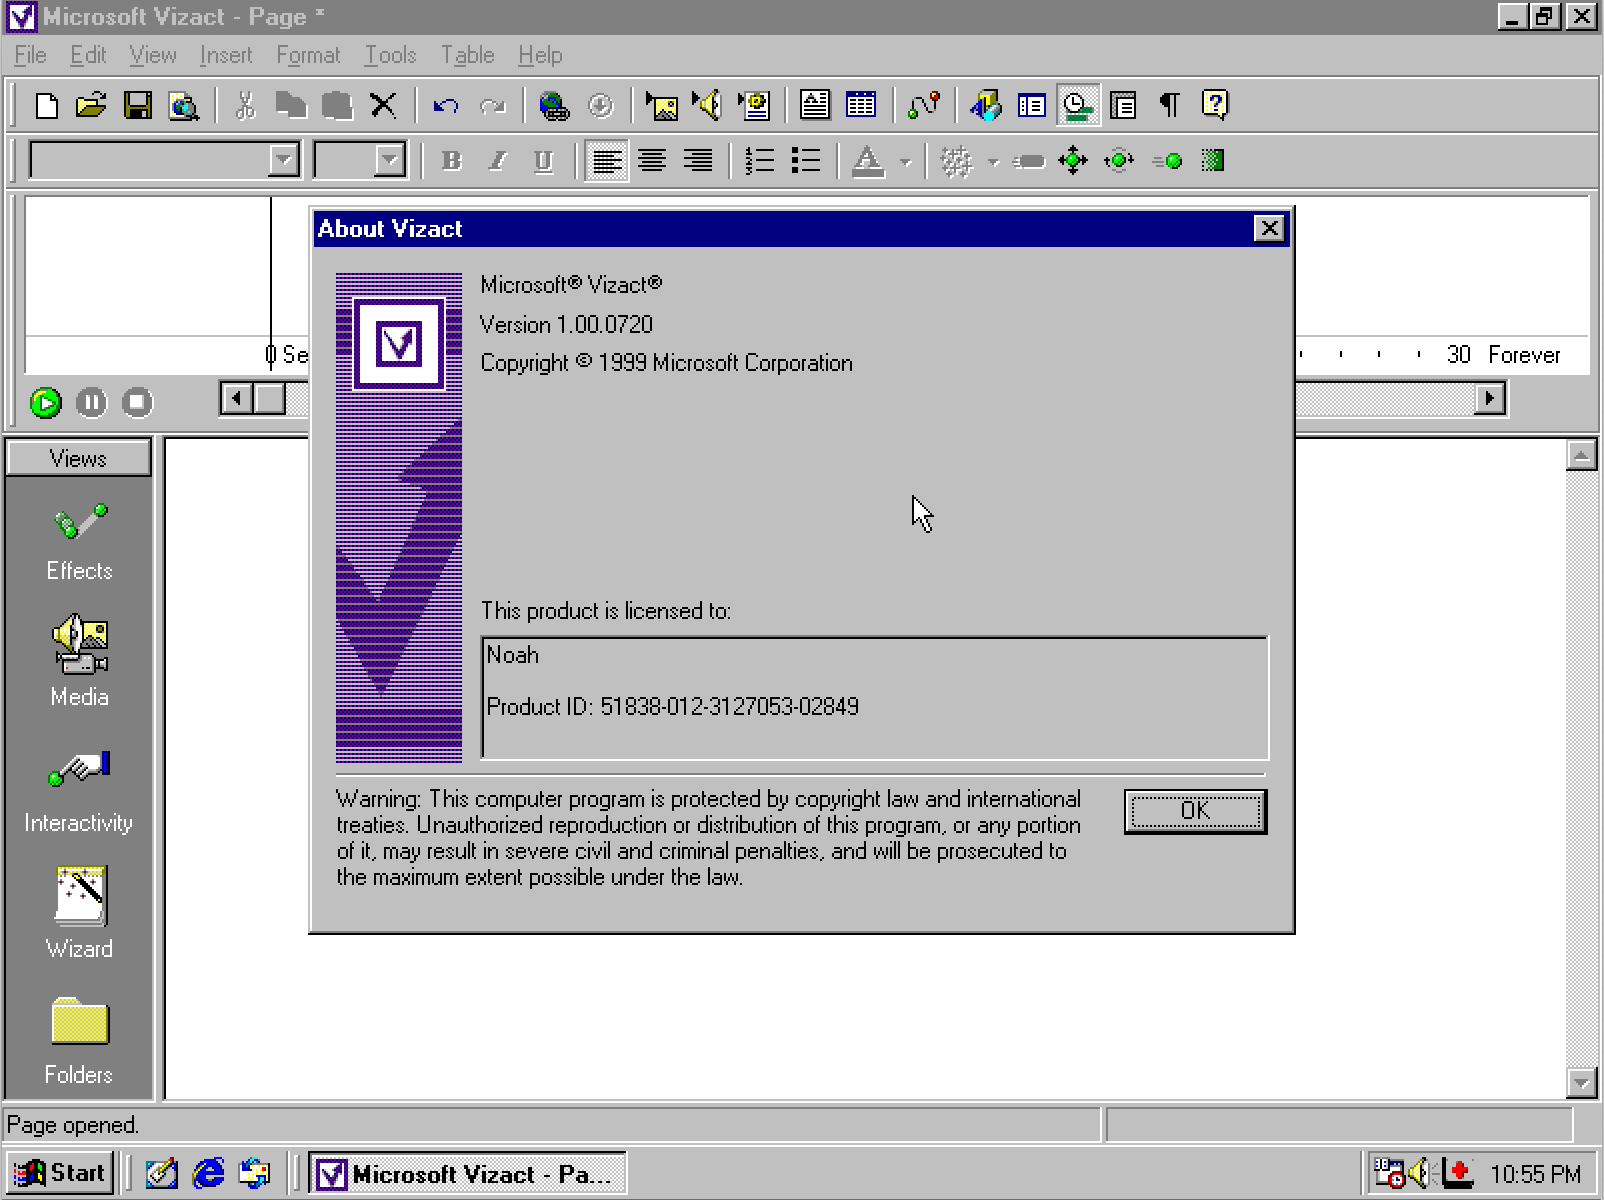 Microsoft Vizact About Screen (2000)